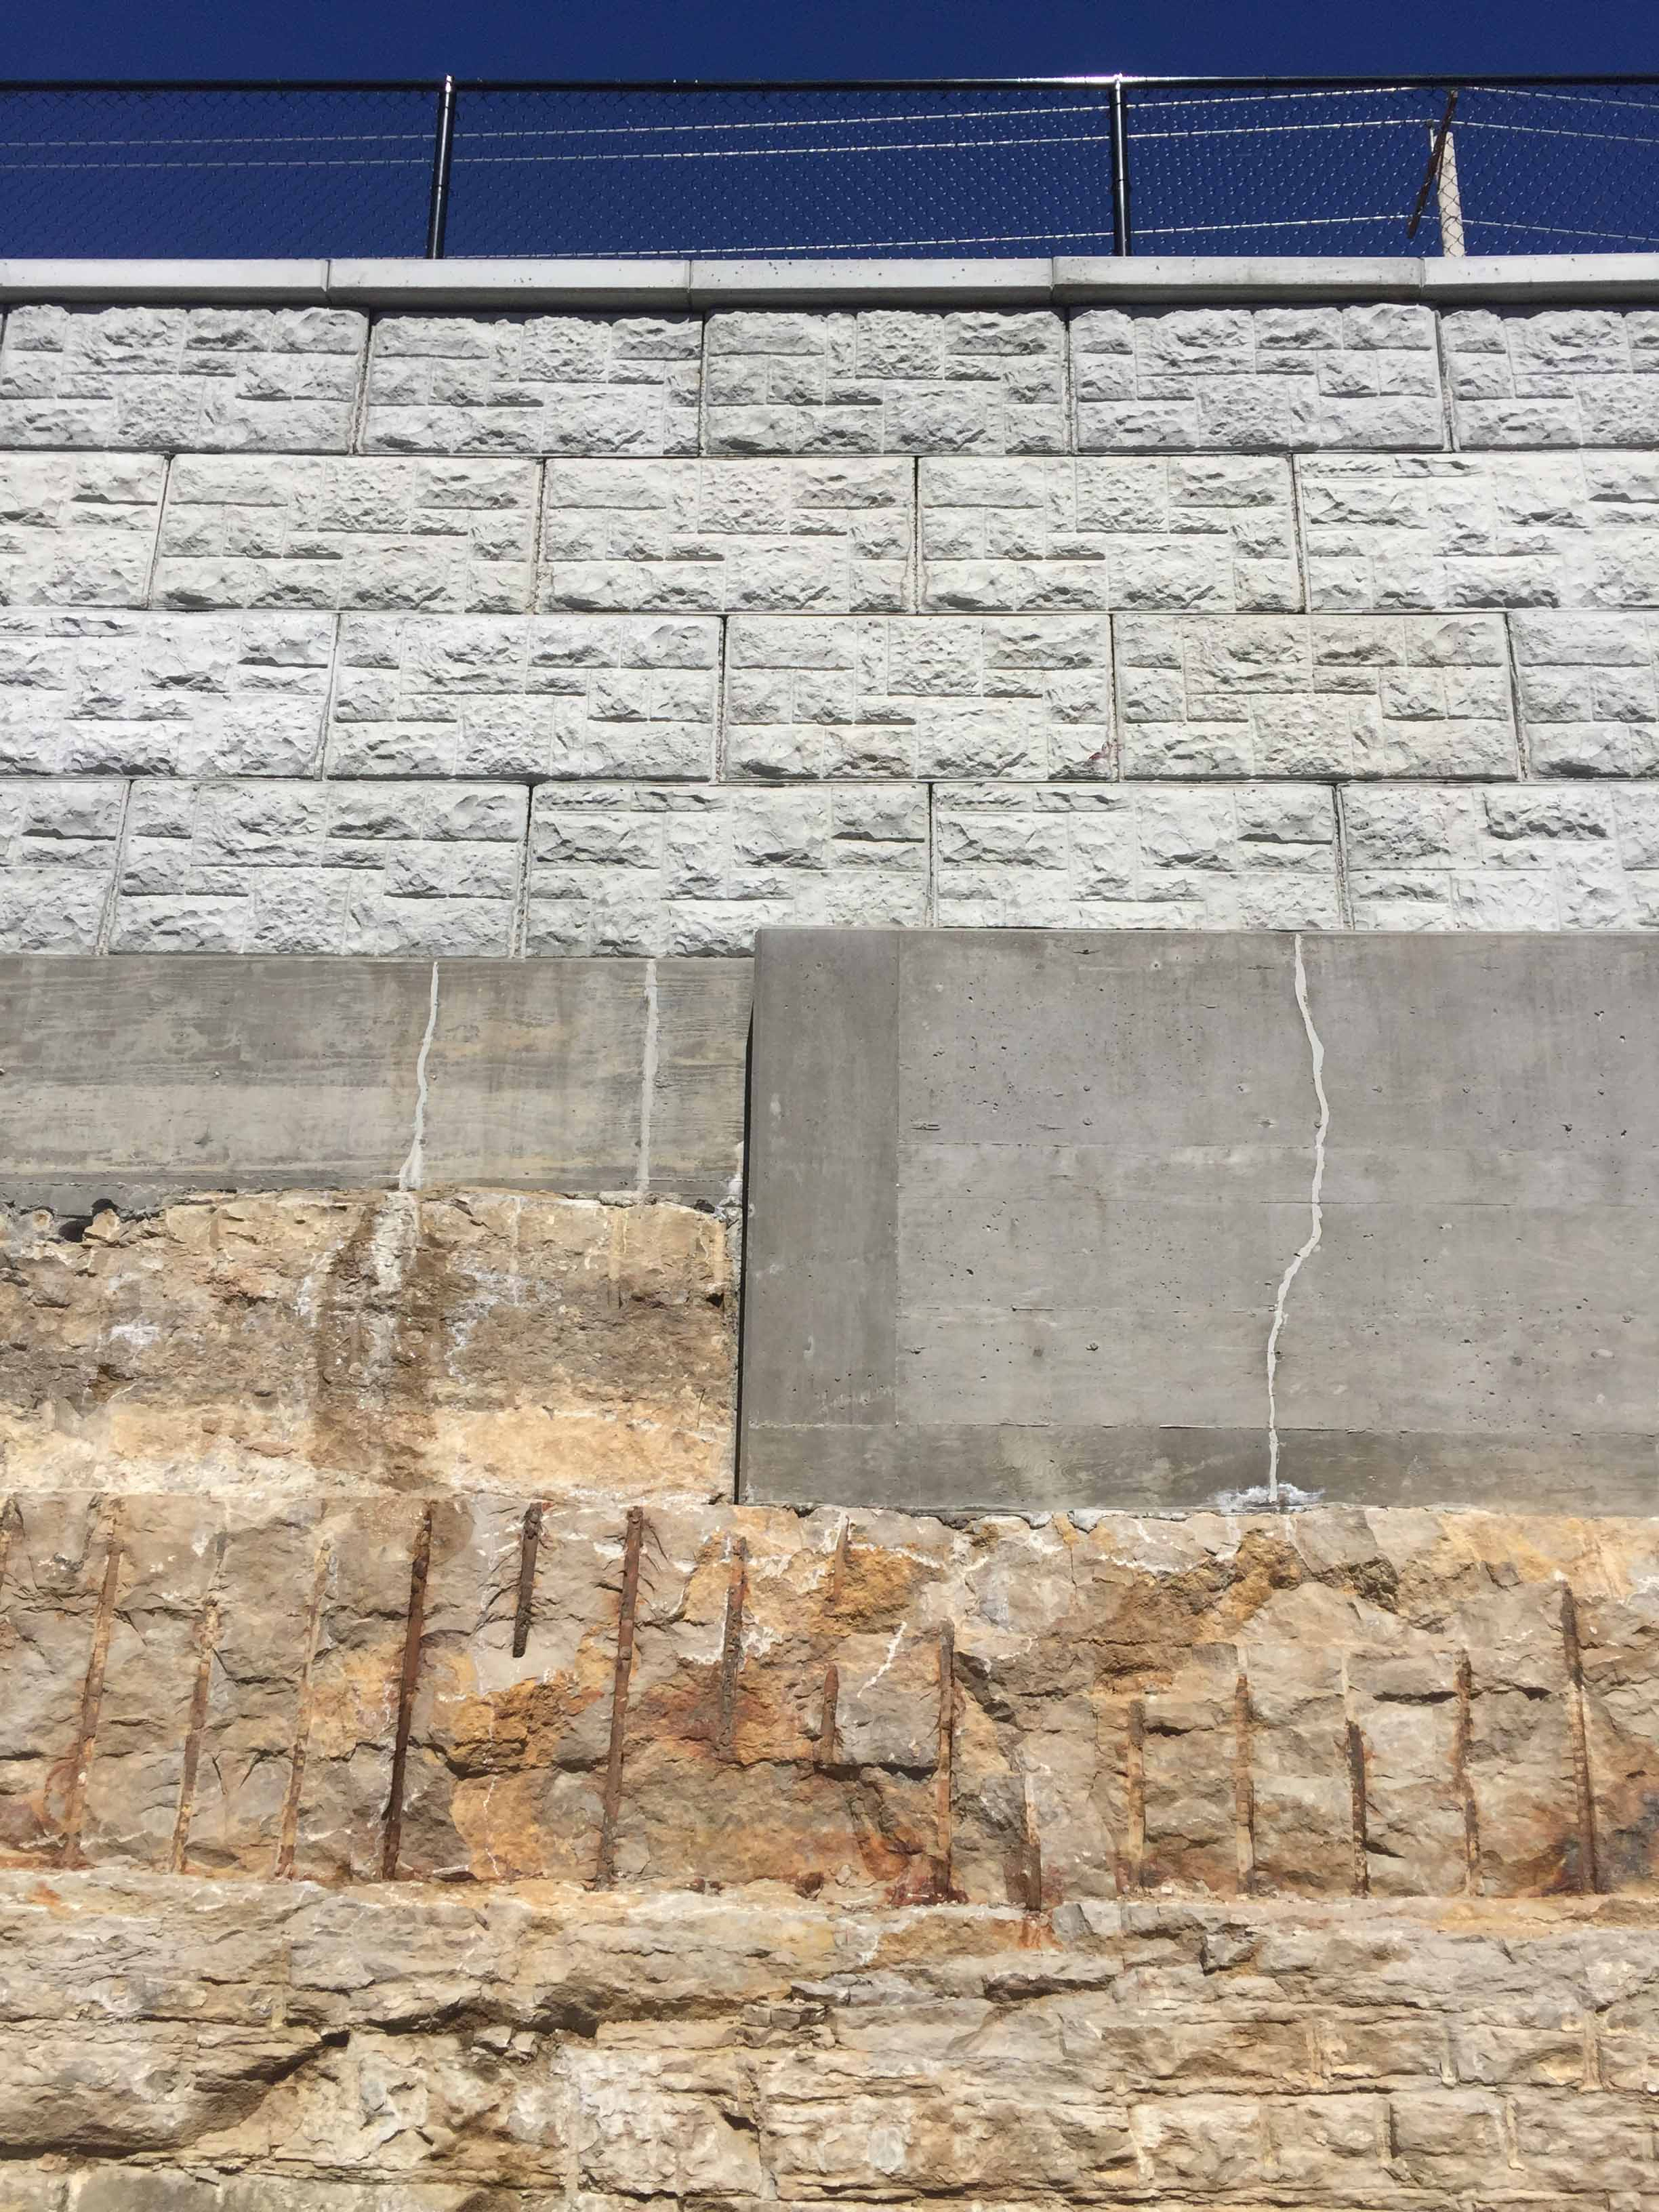 MaxumStone castle face retaining wall in st louis missouri